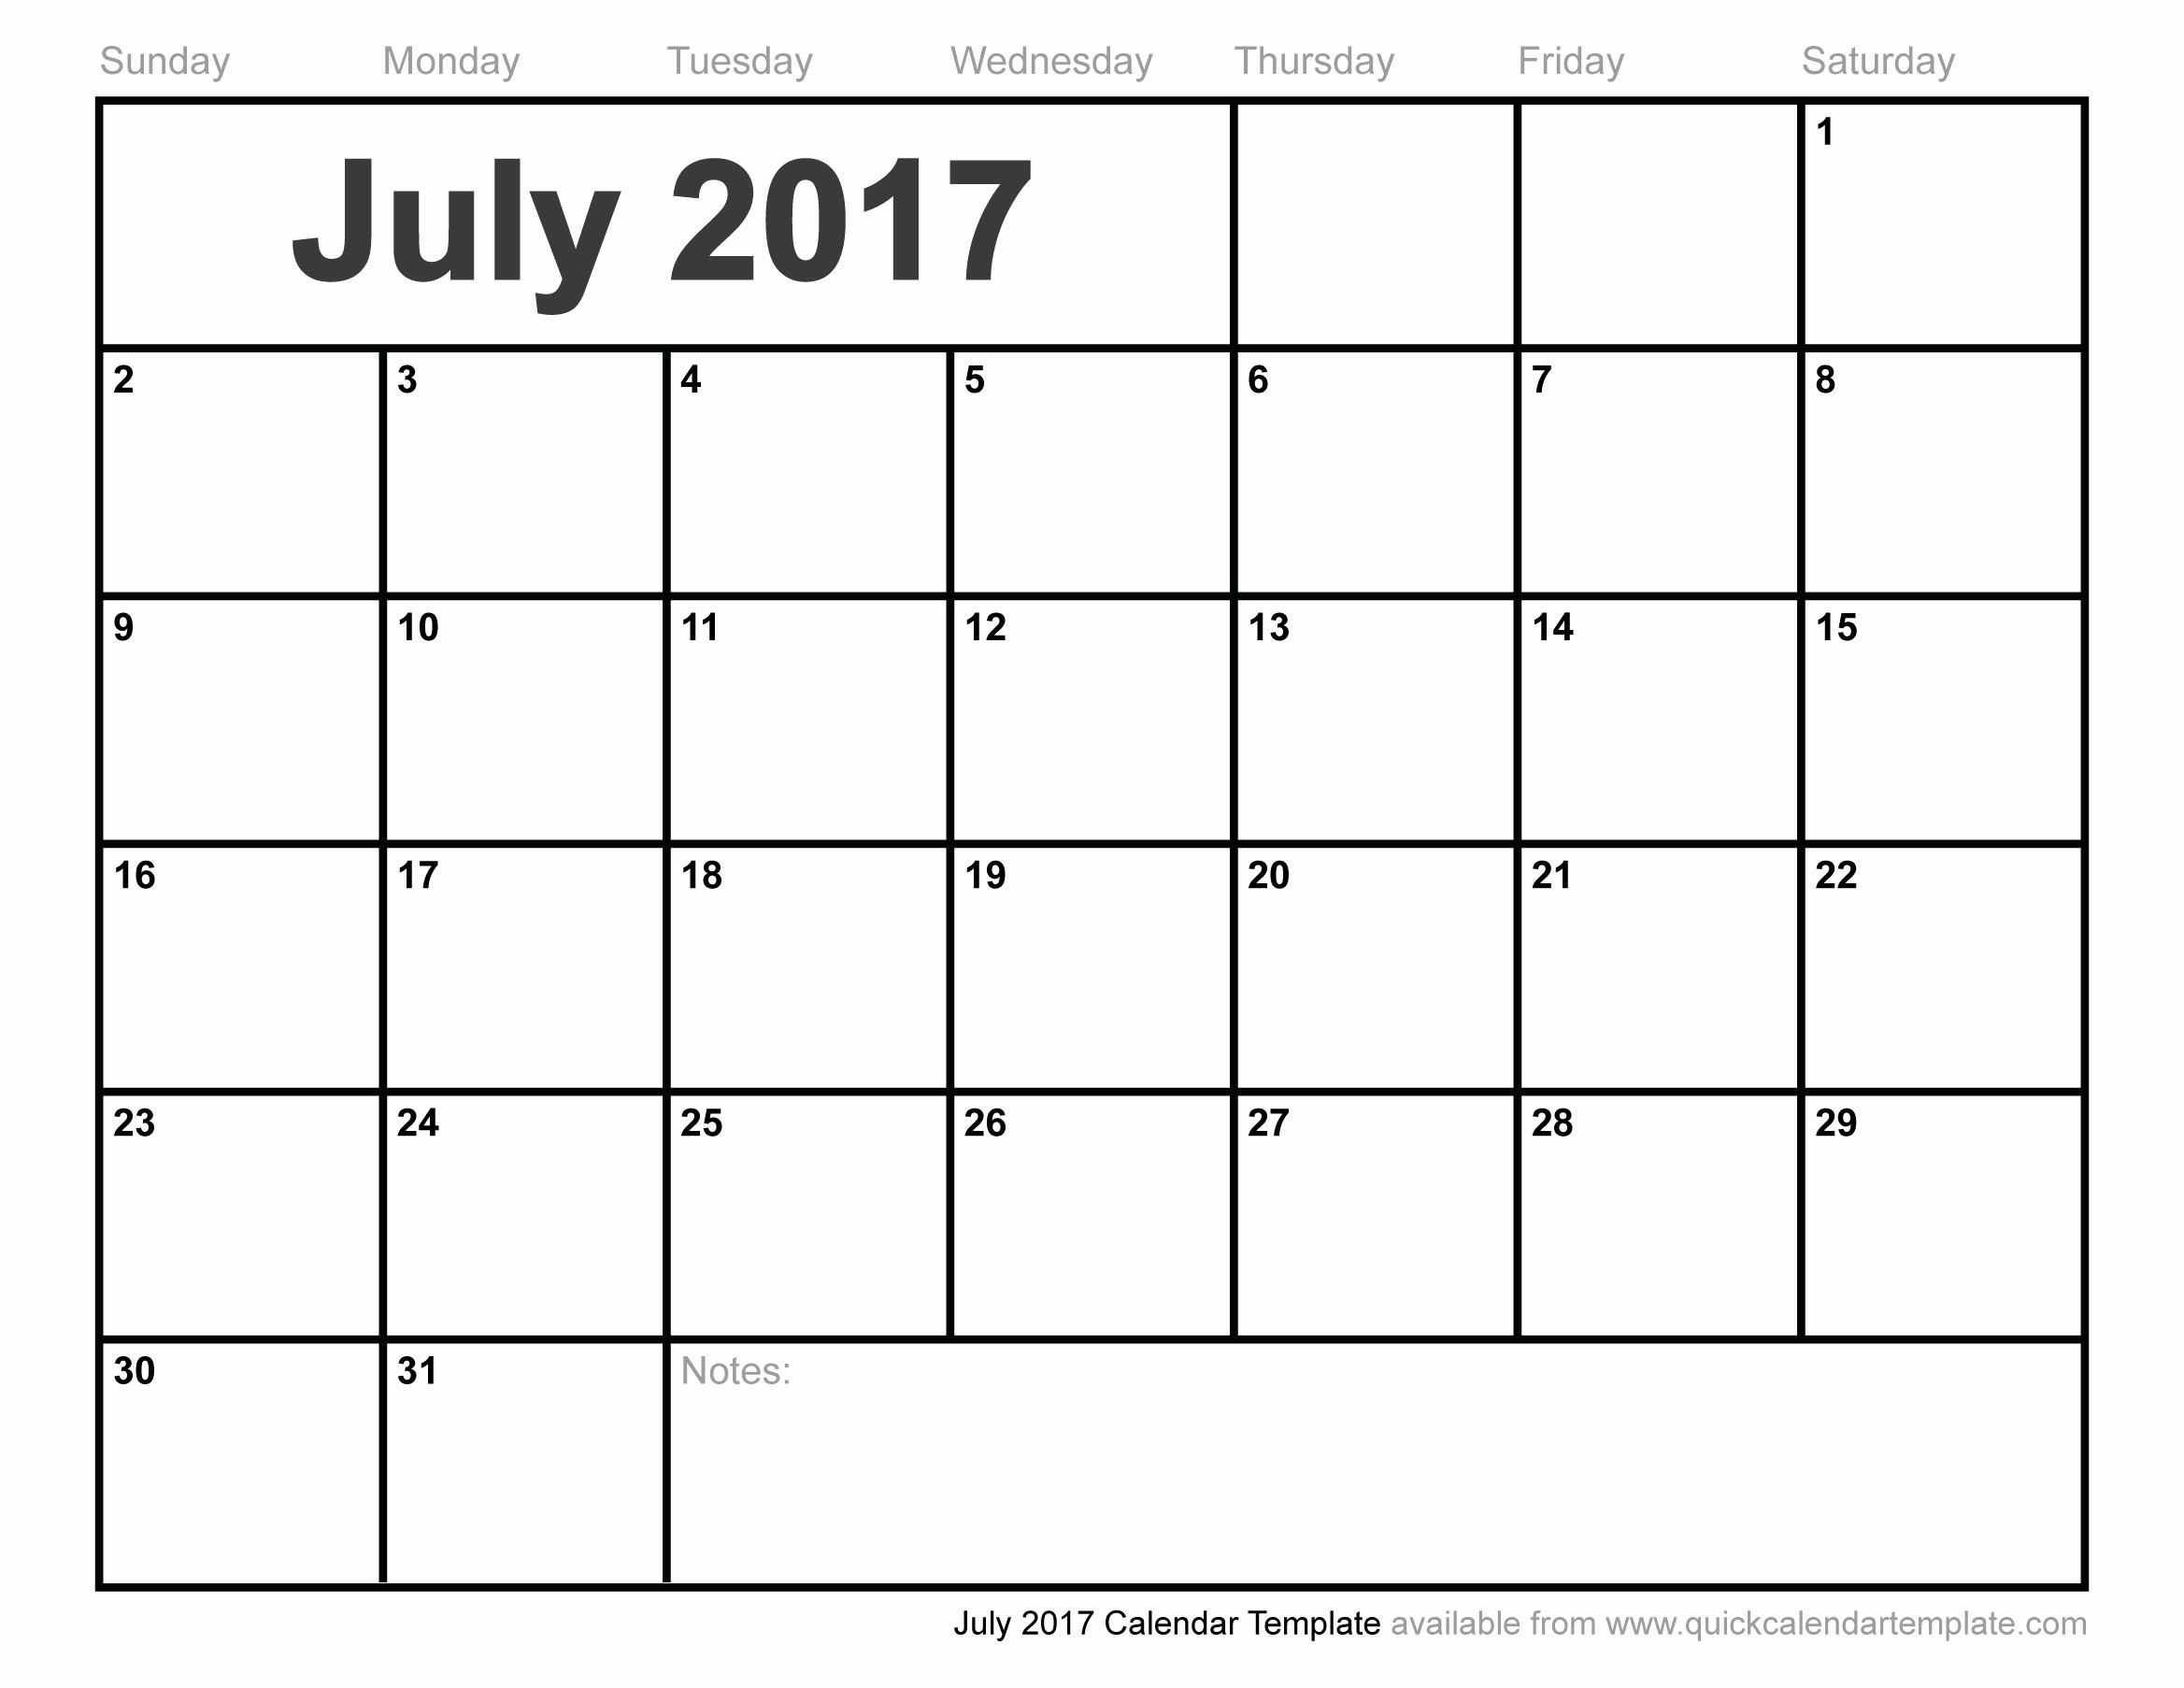 2017 Yearly Calendar Excel Template Awesome July 2017 Calendar Excel